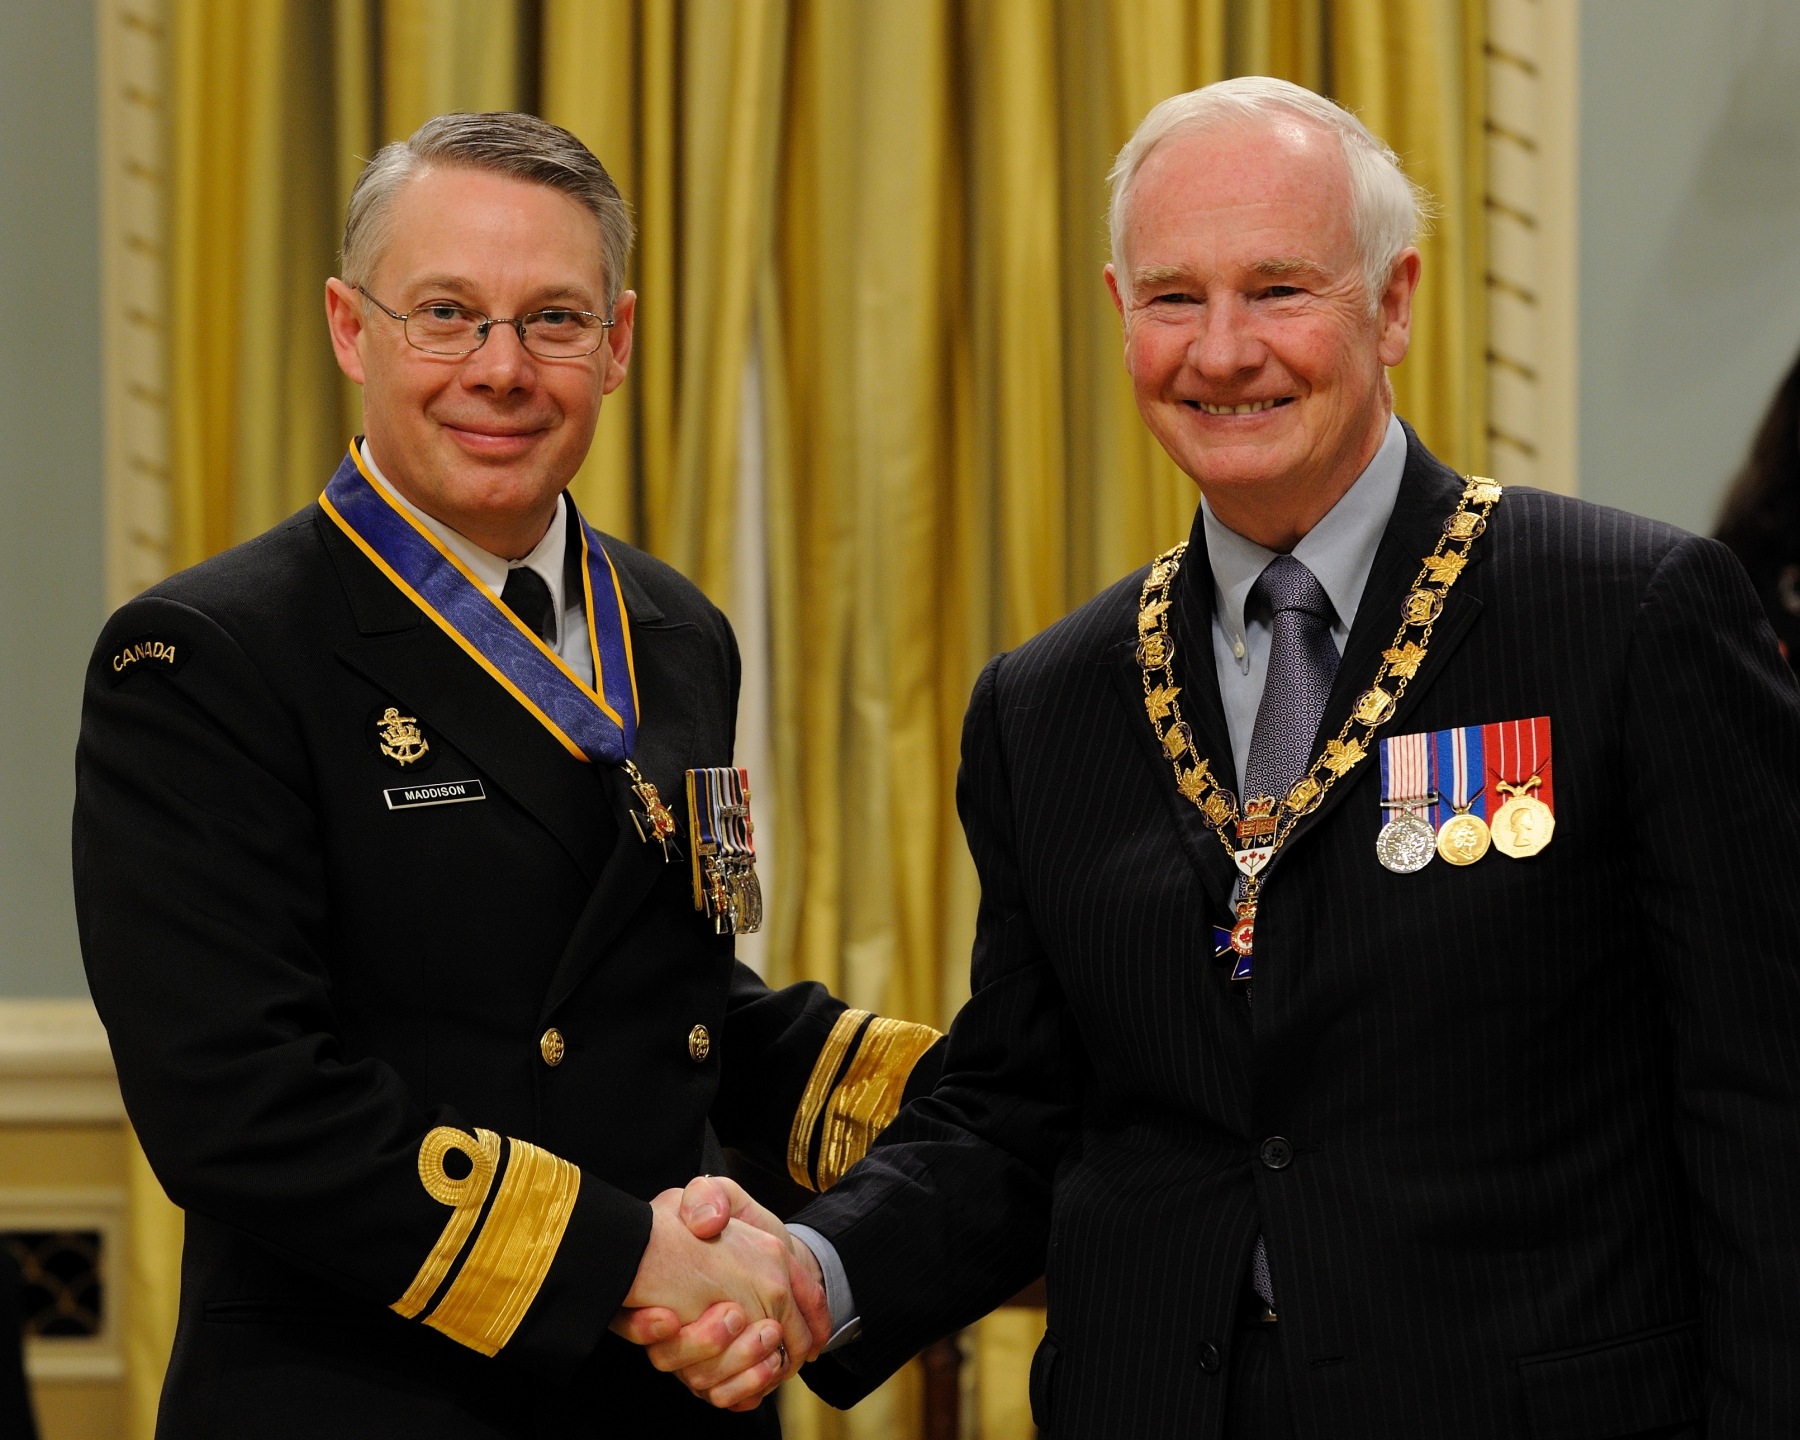 His Excellency presented the Order of Military Merit at the Commander level (C.M.M.) to Rear-Admiral Paul Andrew Maddison, C.M.M., M.S.M., C.D., Office of Chief of the Maritime Staff, Ottawa, Ontario. This is a promotion within the Order.